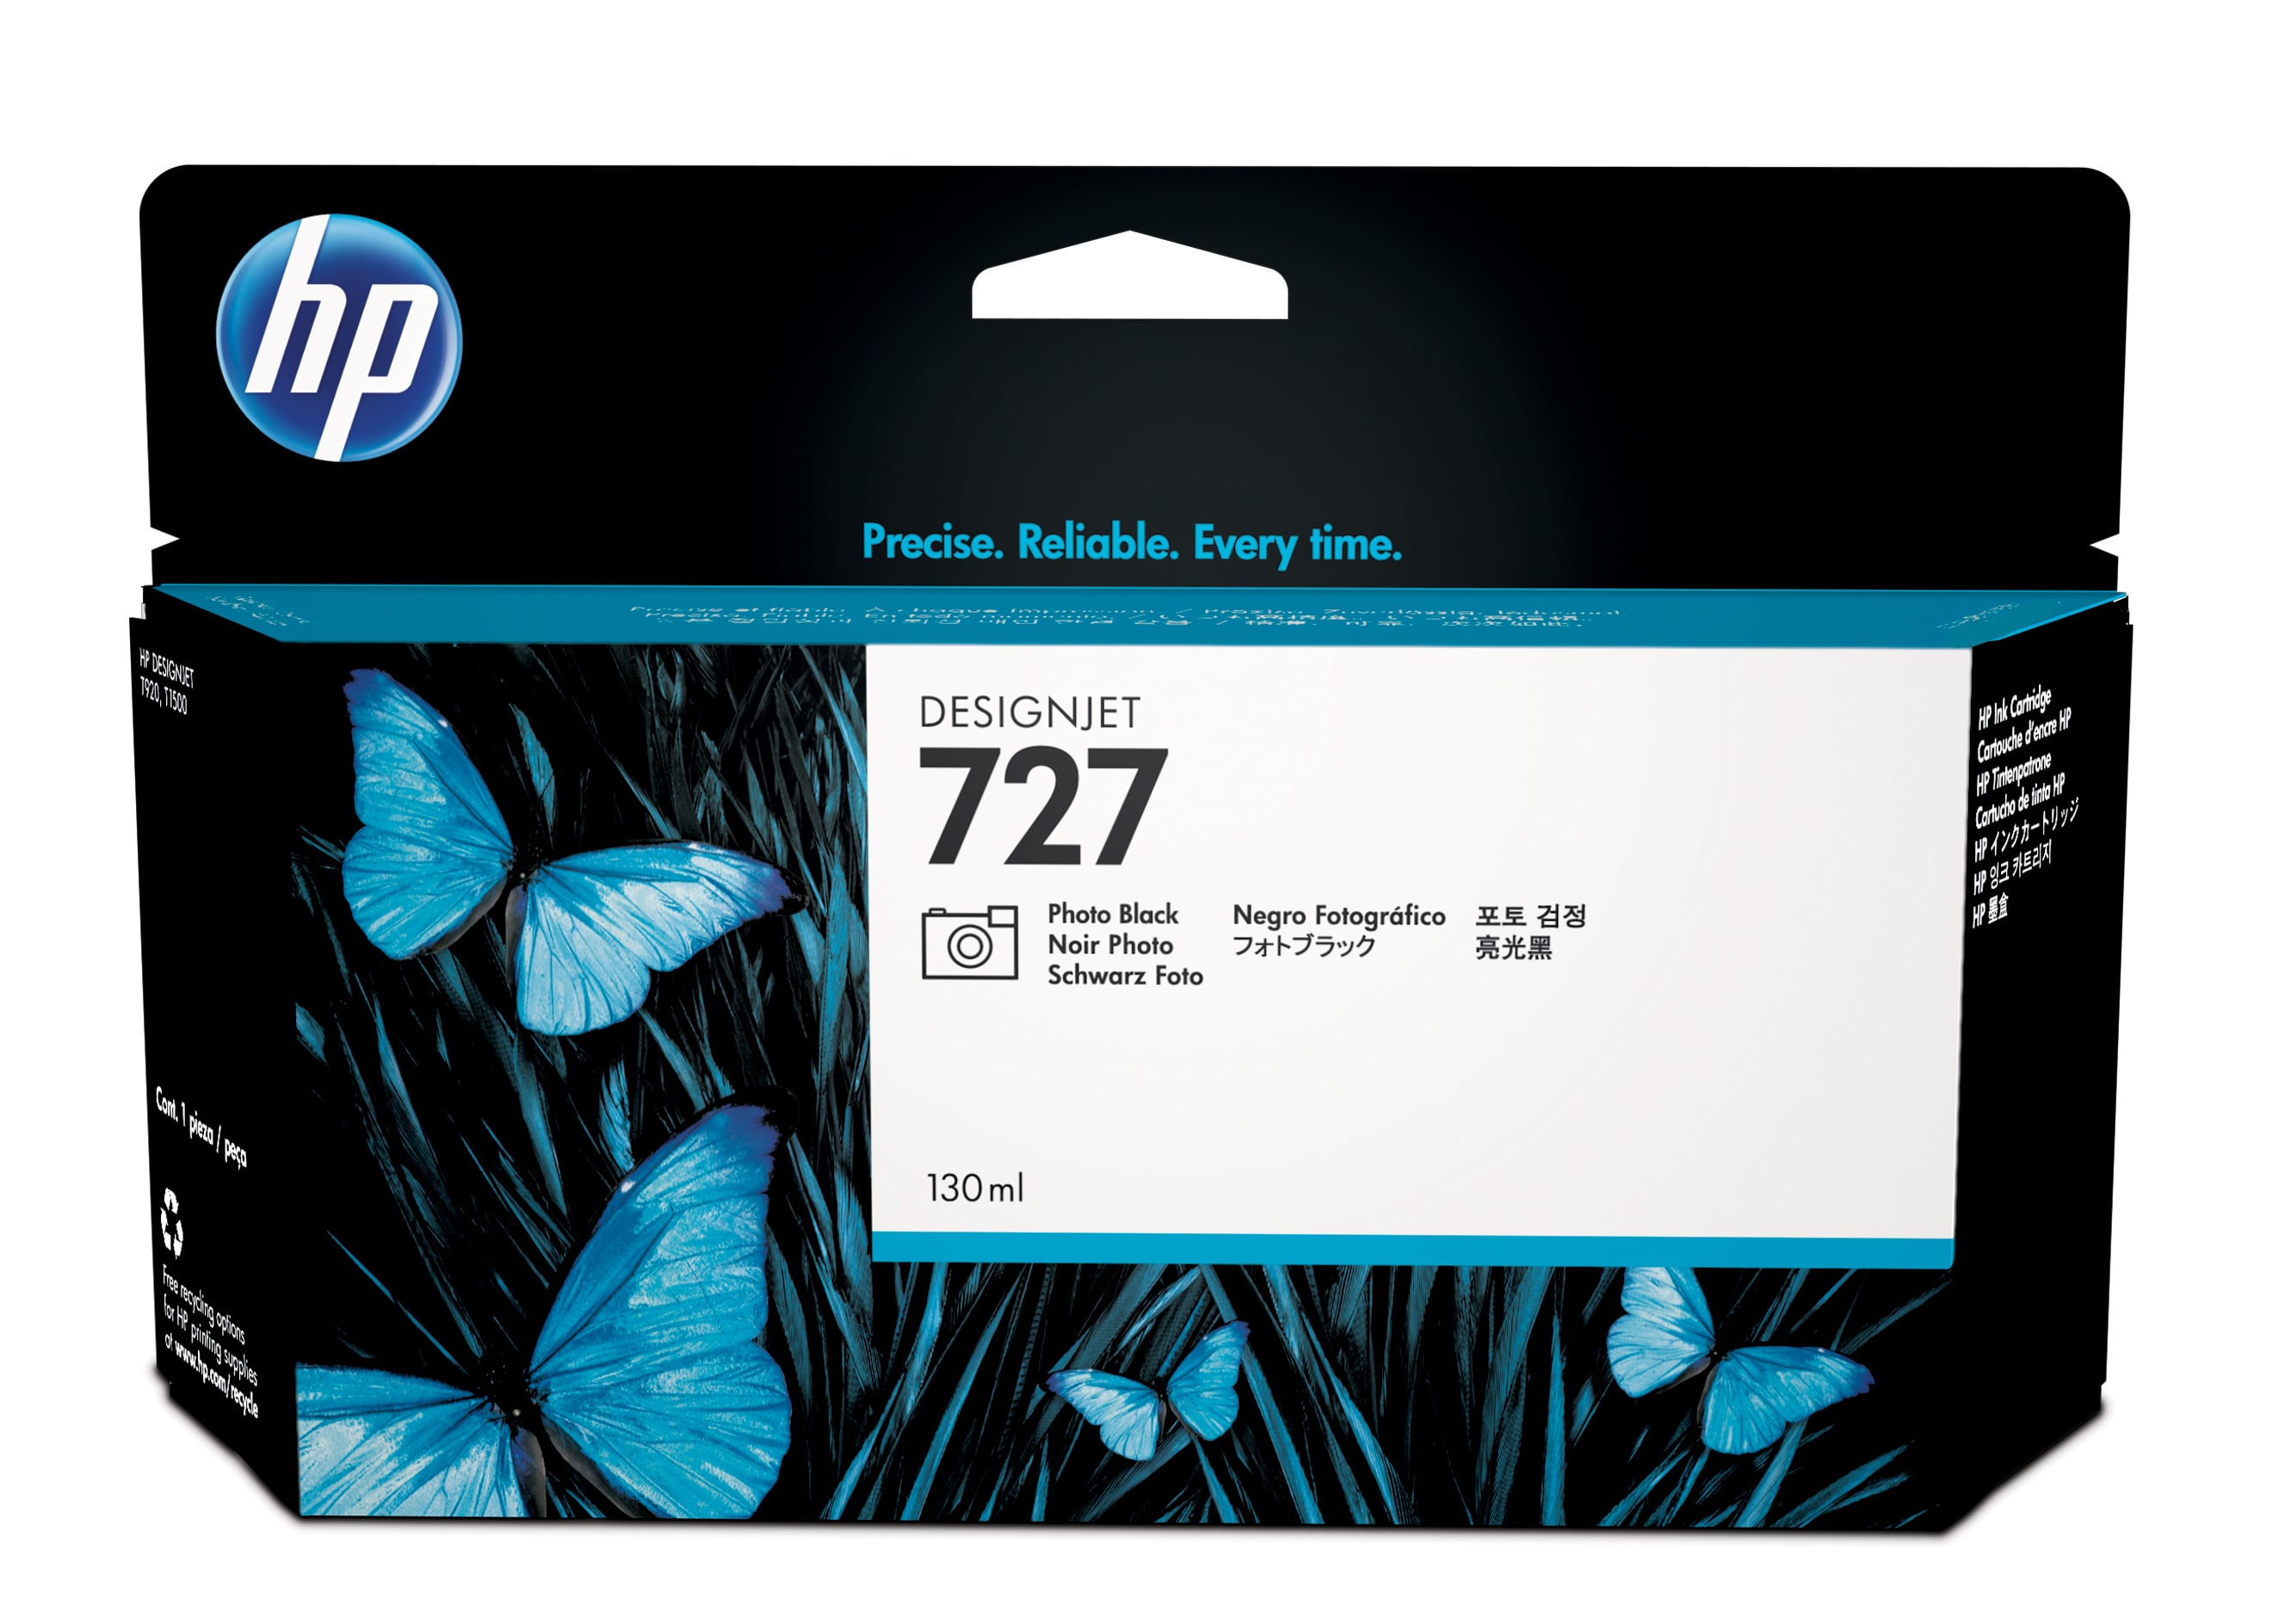 Hpb3p23a       Hp 727 130ml Photo Black Ink   Cartridge                                                    - UF01